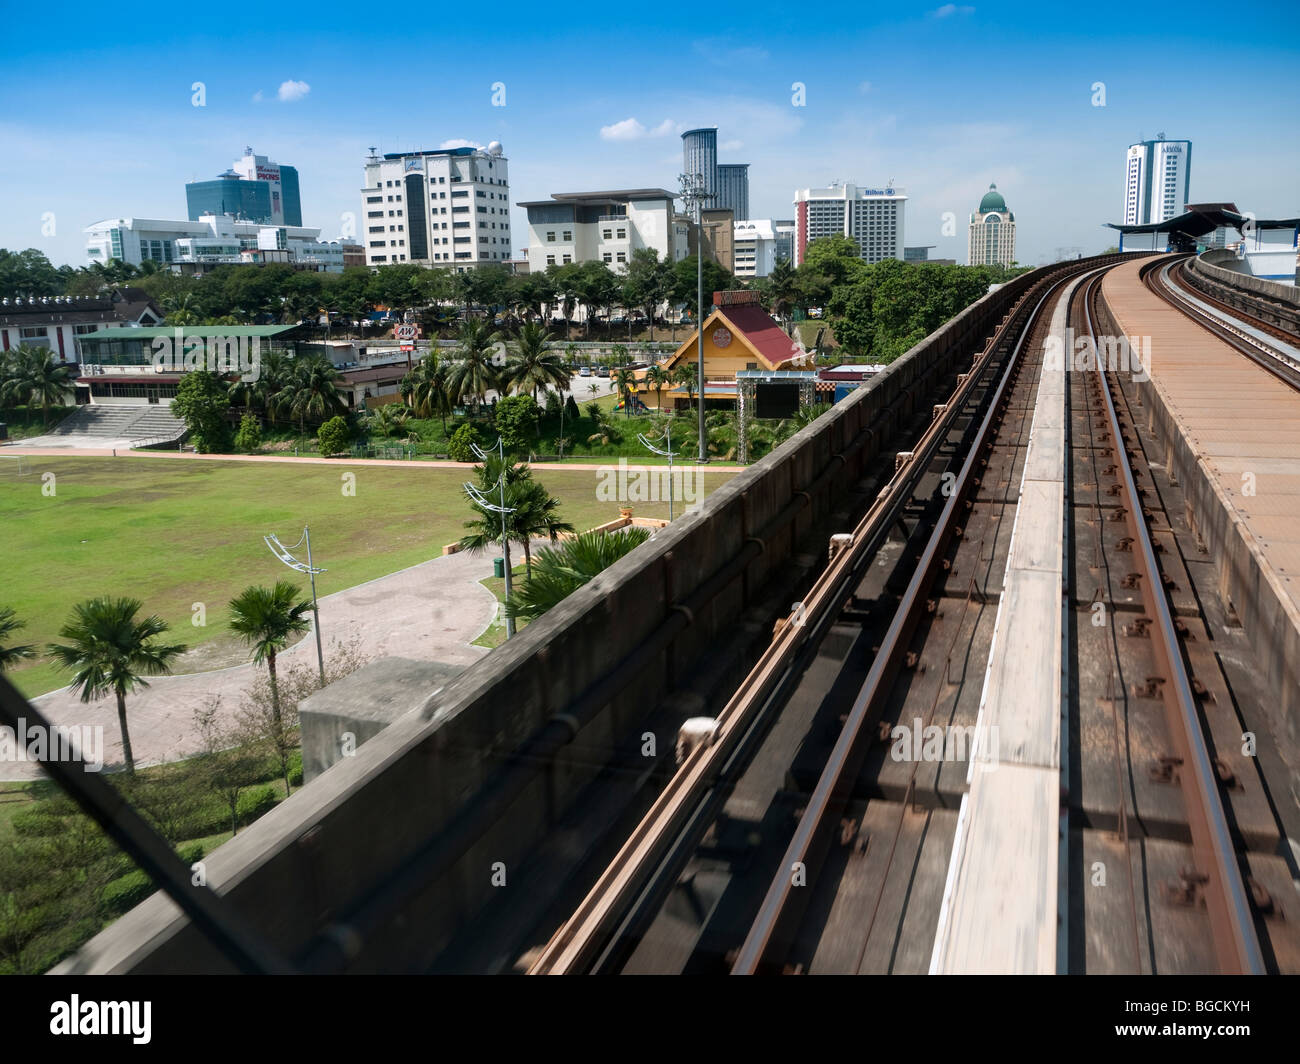 View from monorail from Petaling Jaya to Kuala Lumpur - Stock Image